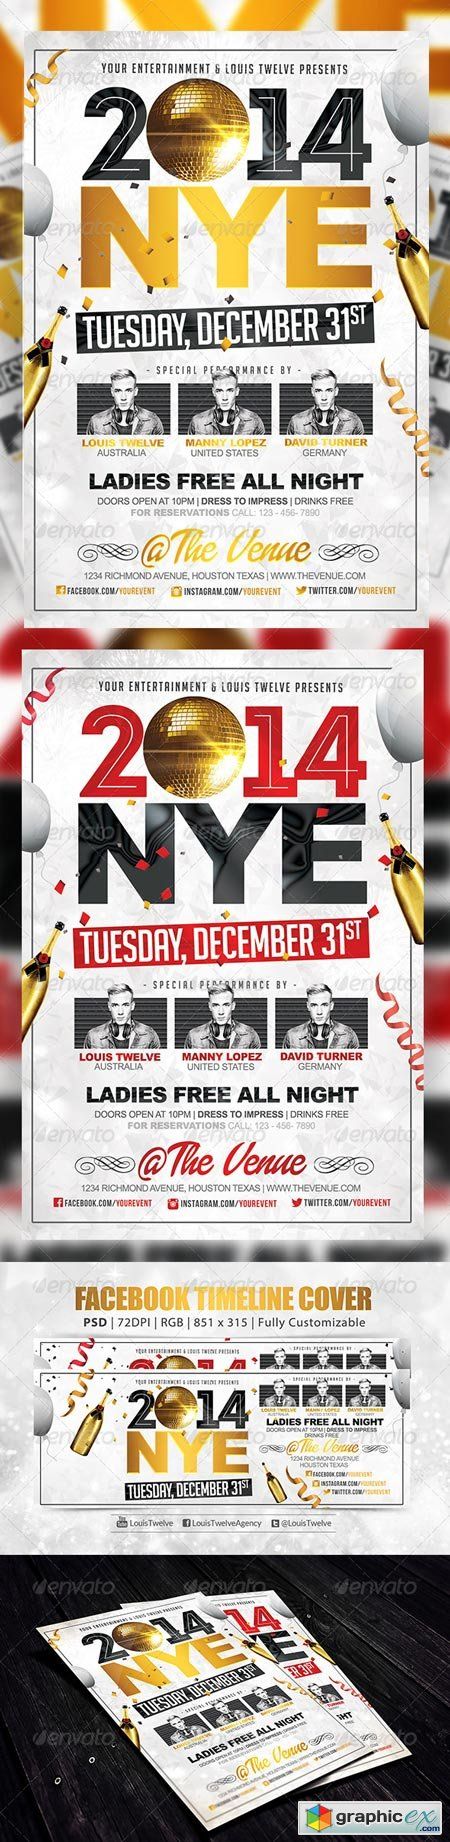 NYE Party 2 Flyer + FB Cover 6160748